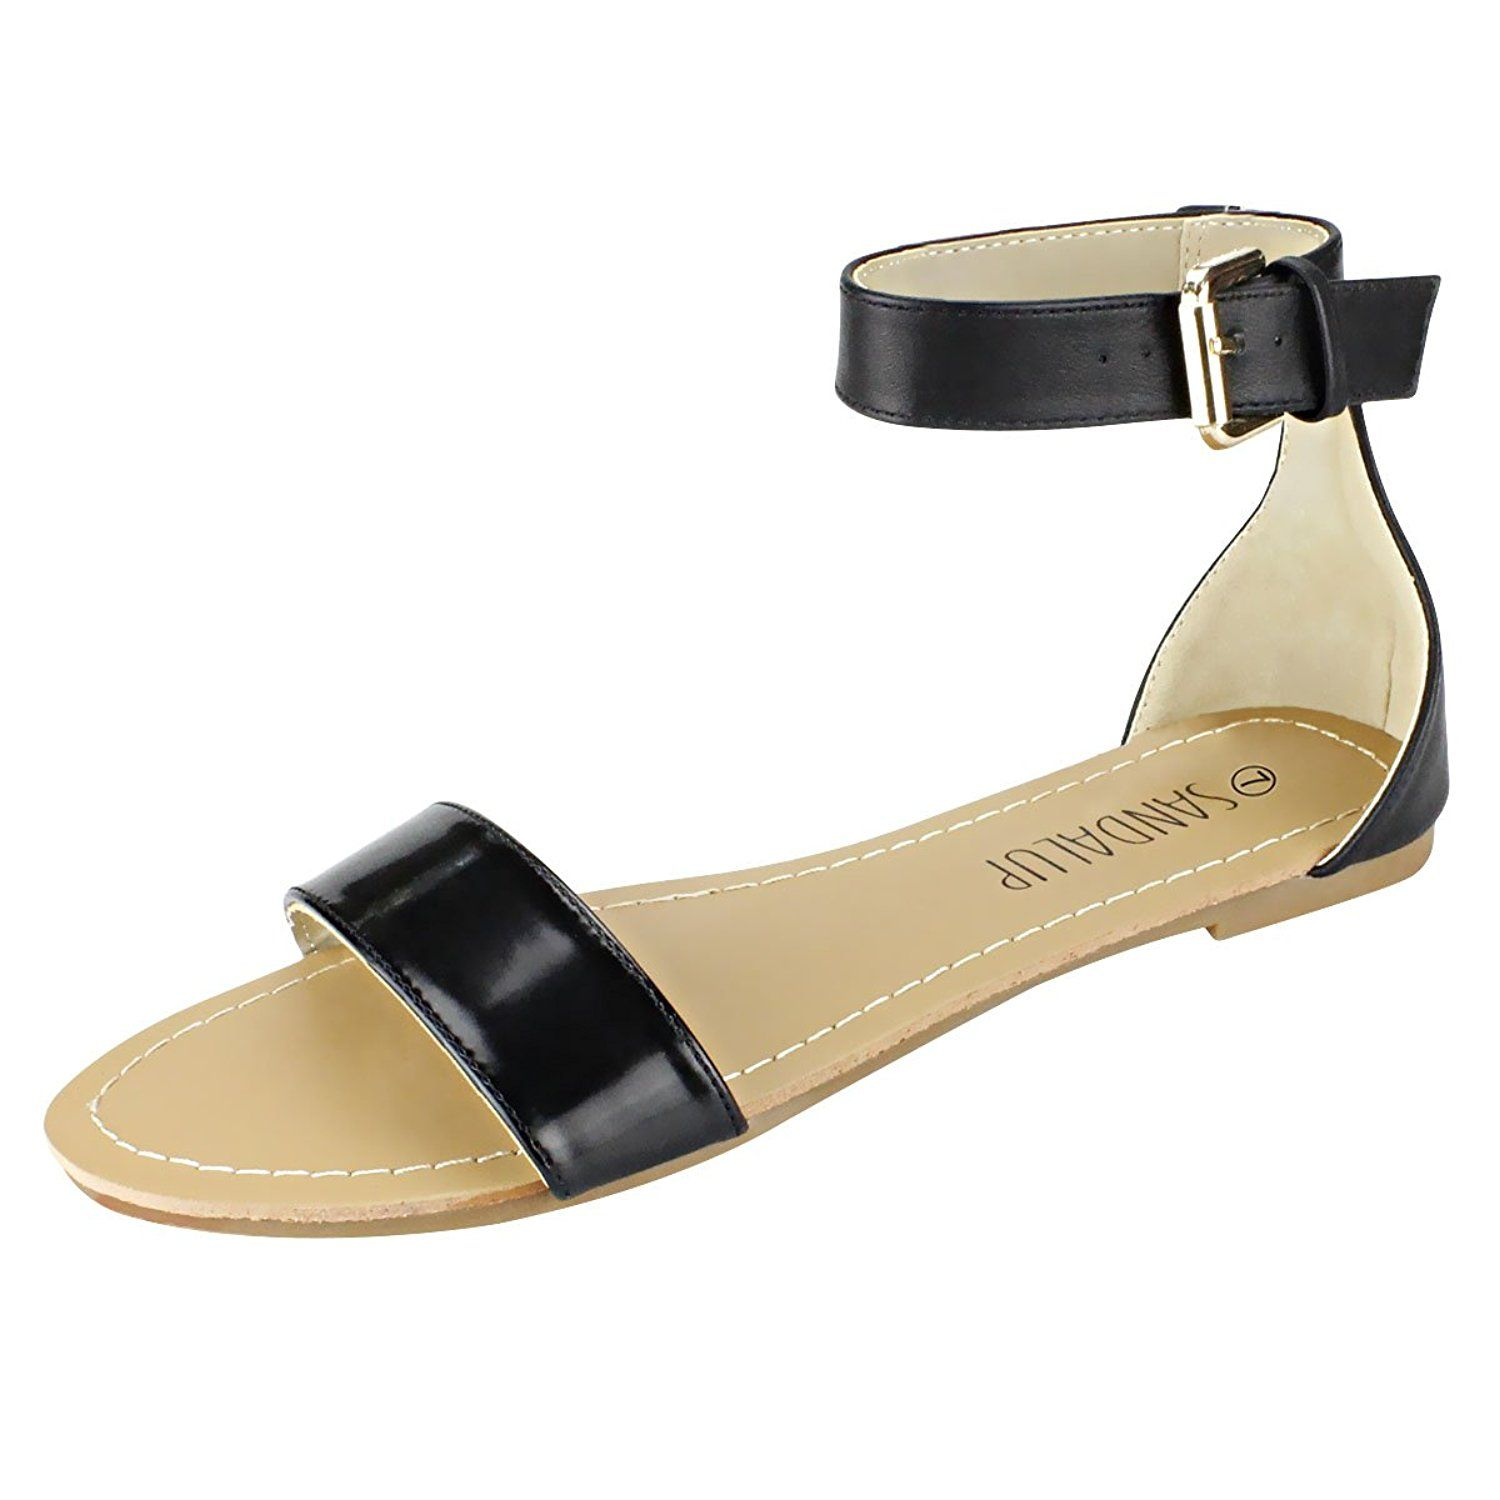 8953db126 SANDALUP Tie Up Ankle Strap Flat Sandals for Women Flats